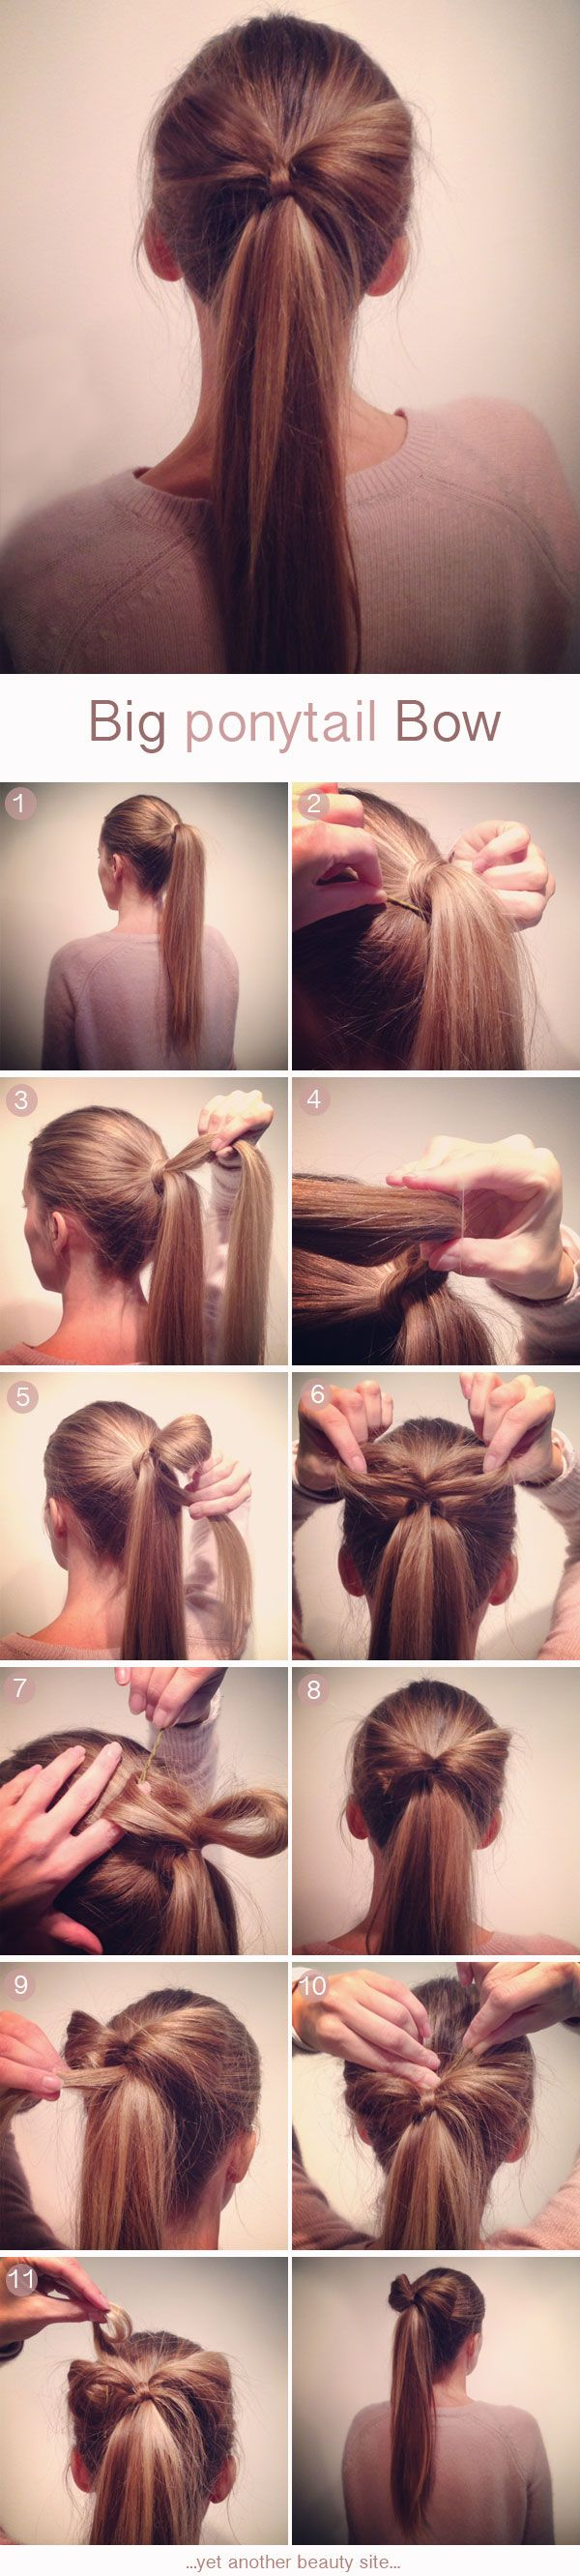 Yet another beauty site #hairtutorials #ponytail #hairbow #bow